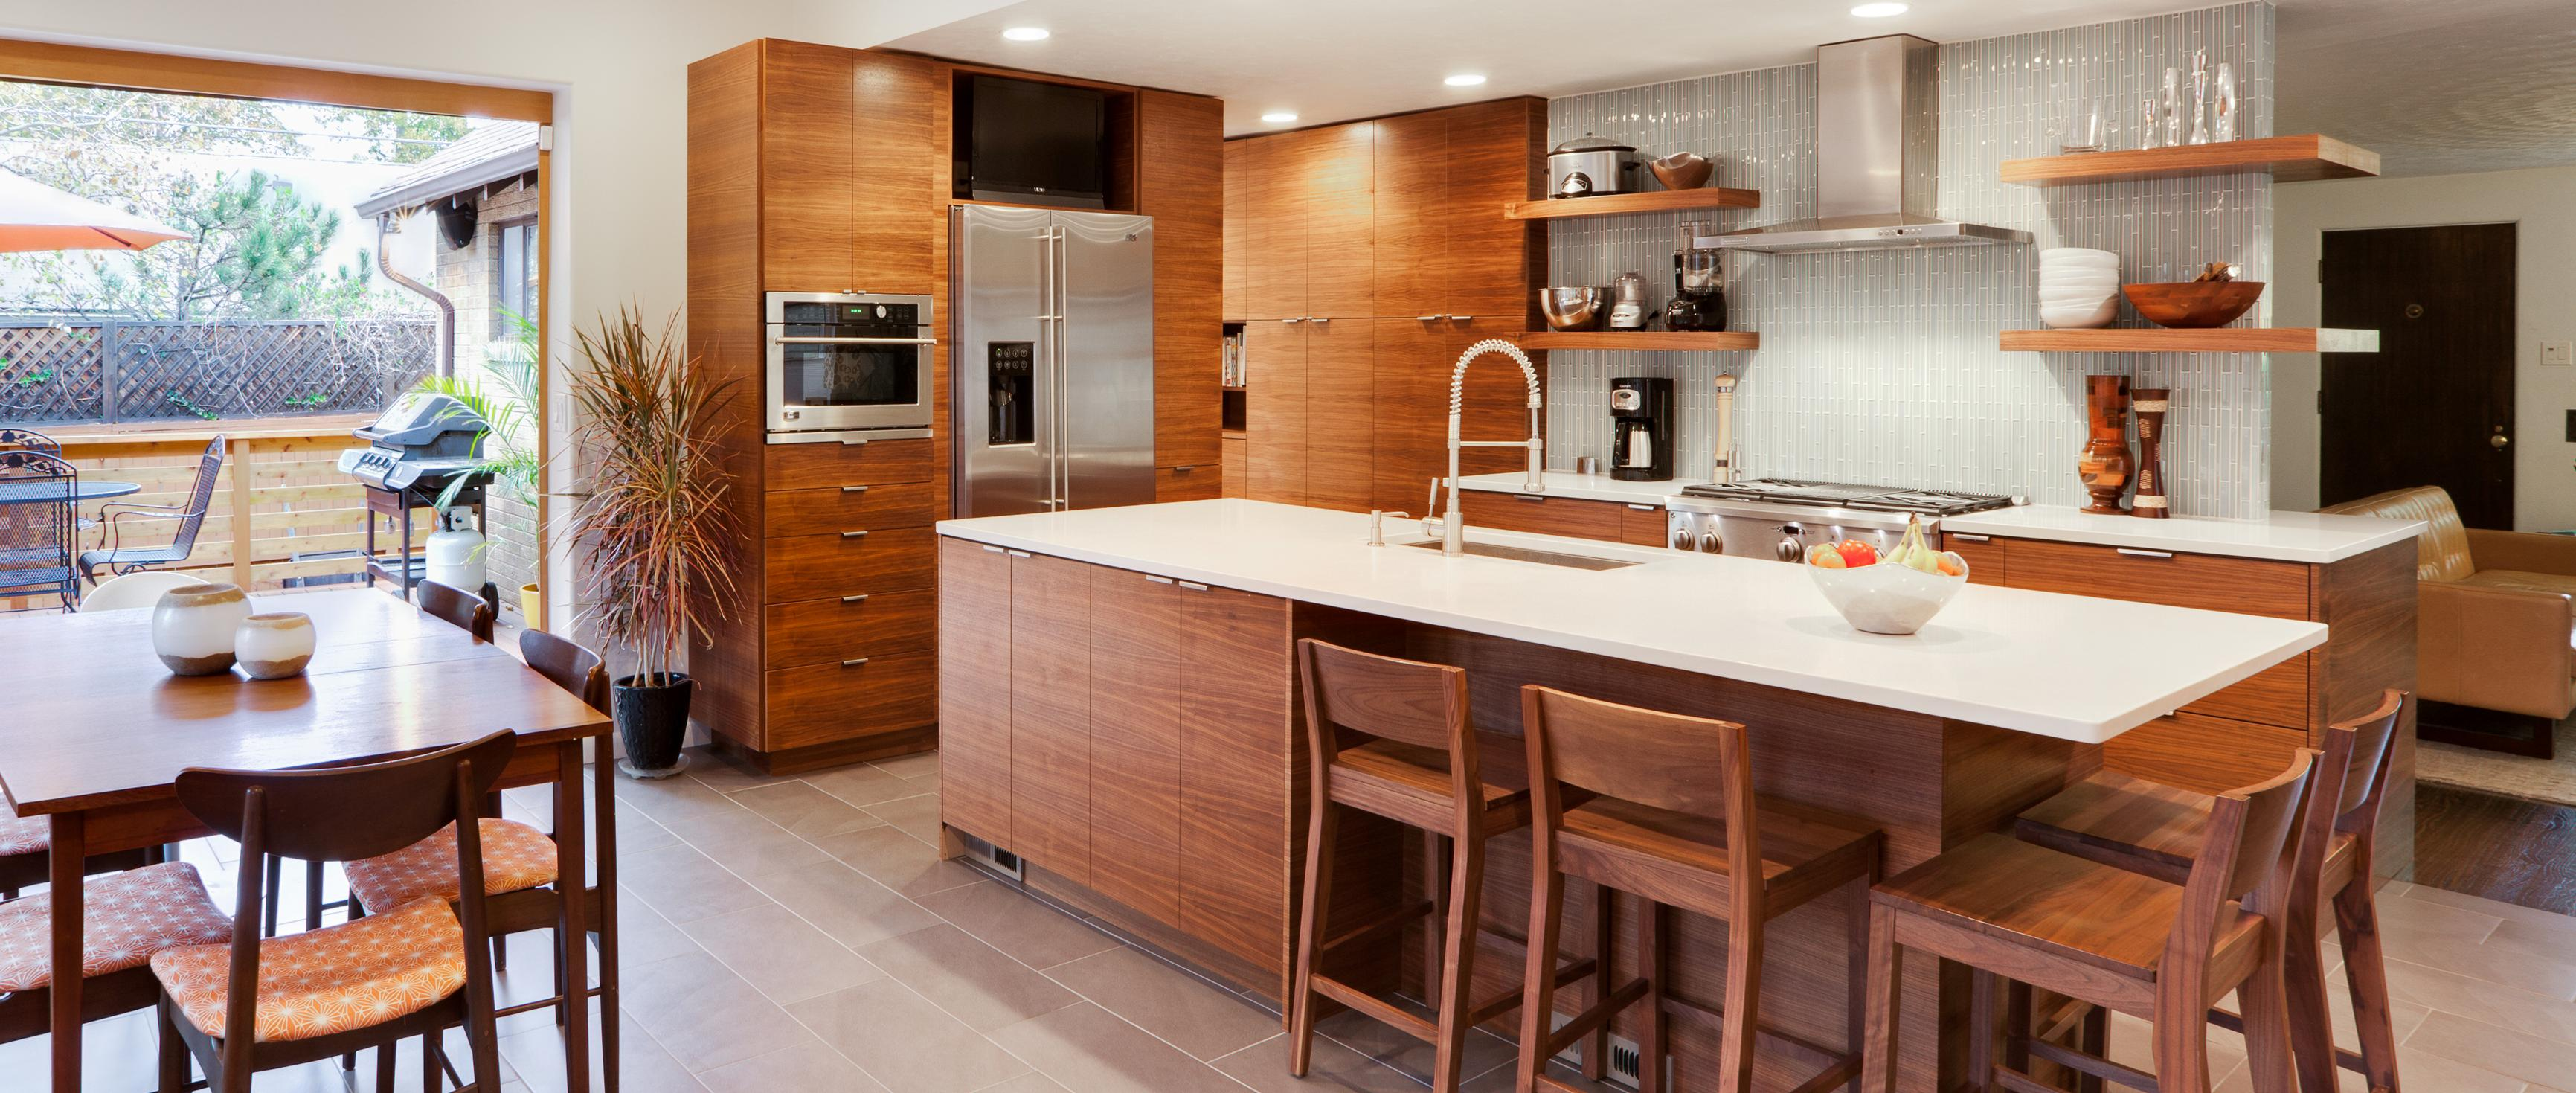 Kitchens – StudioHOFF Architecture Denver Colorado residential